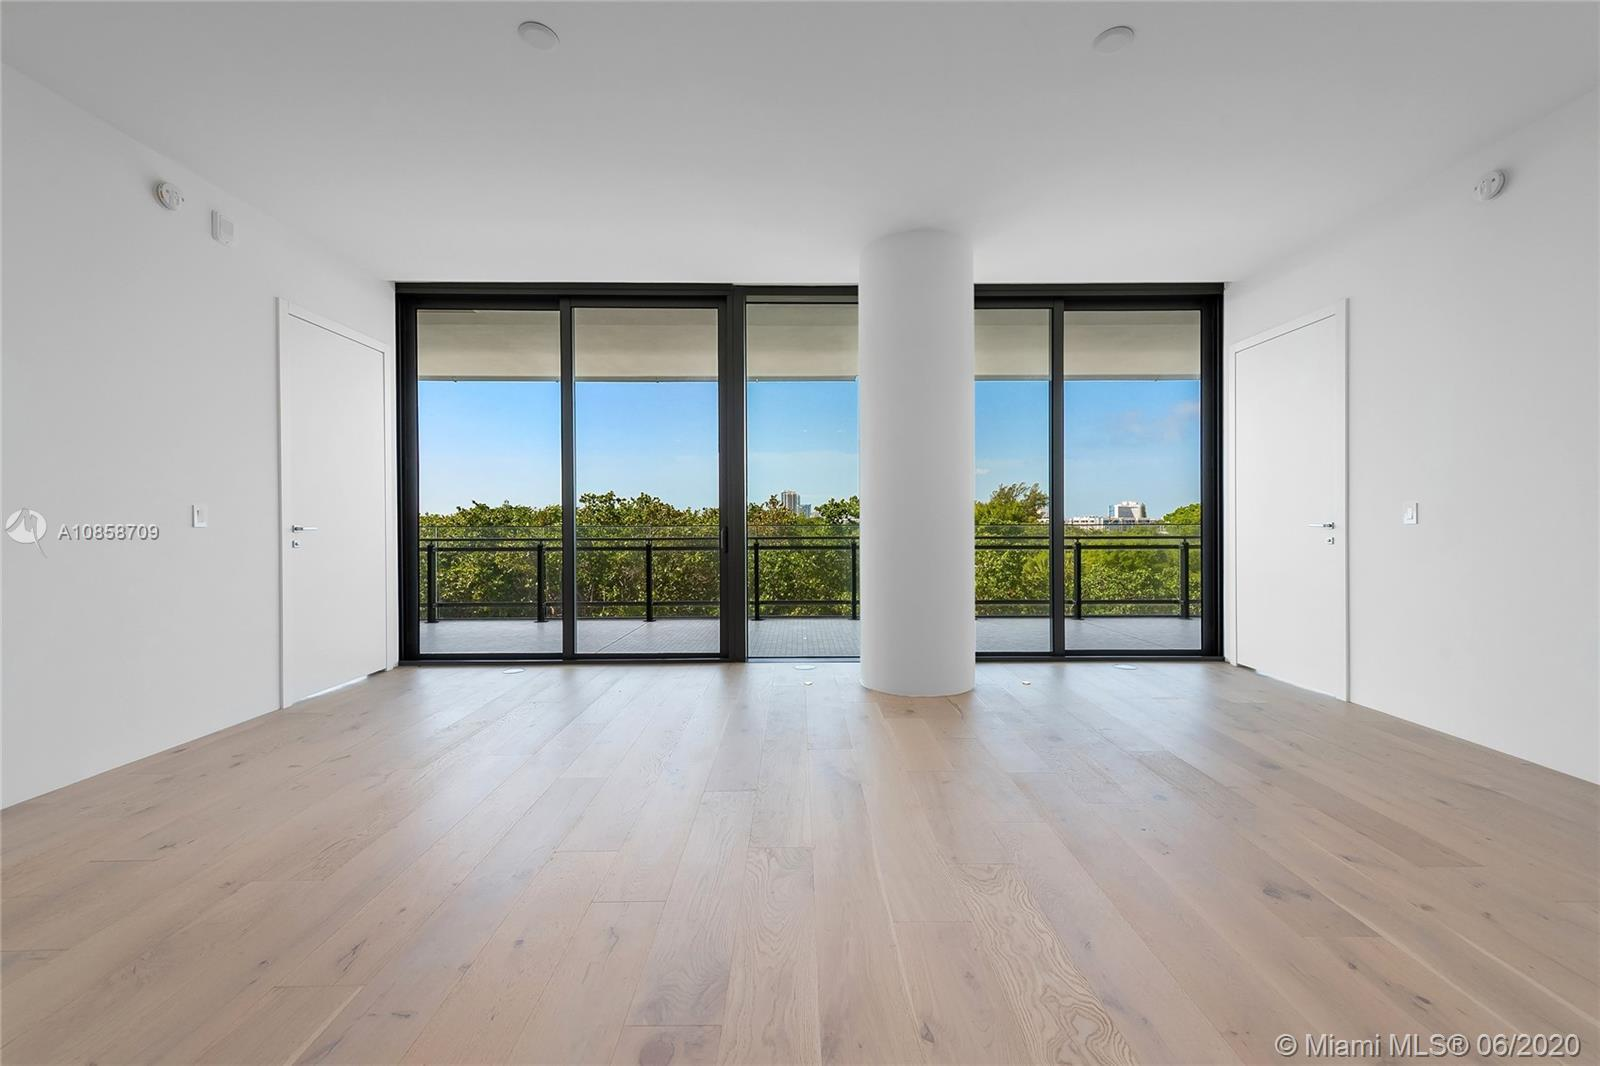 8701 Collins Ave, #404